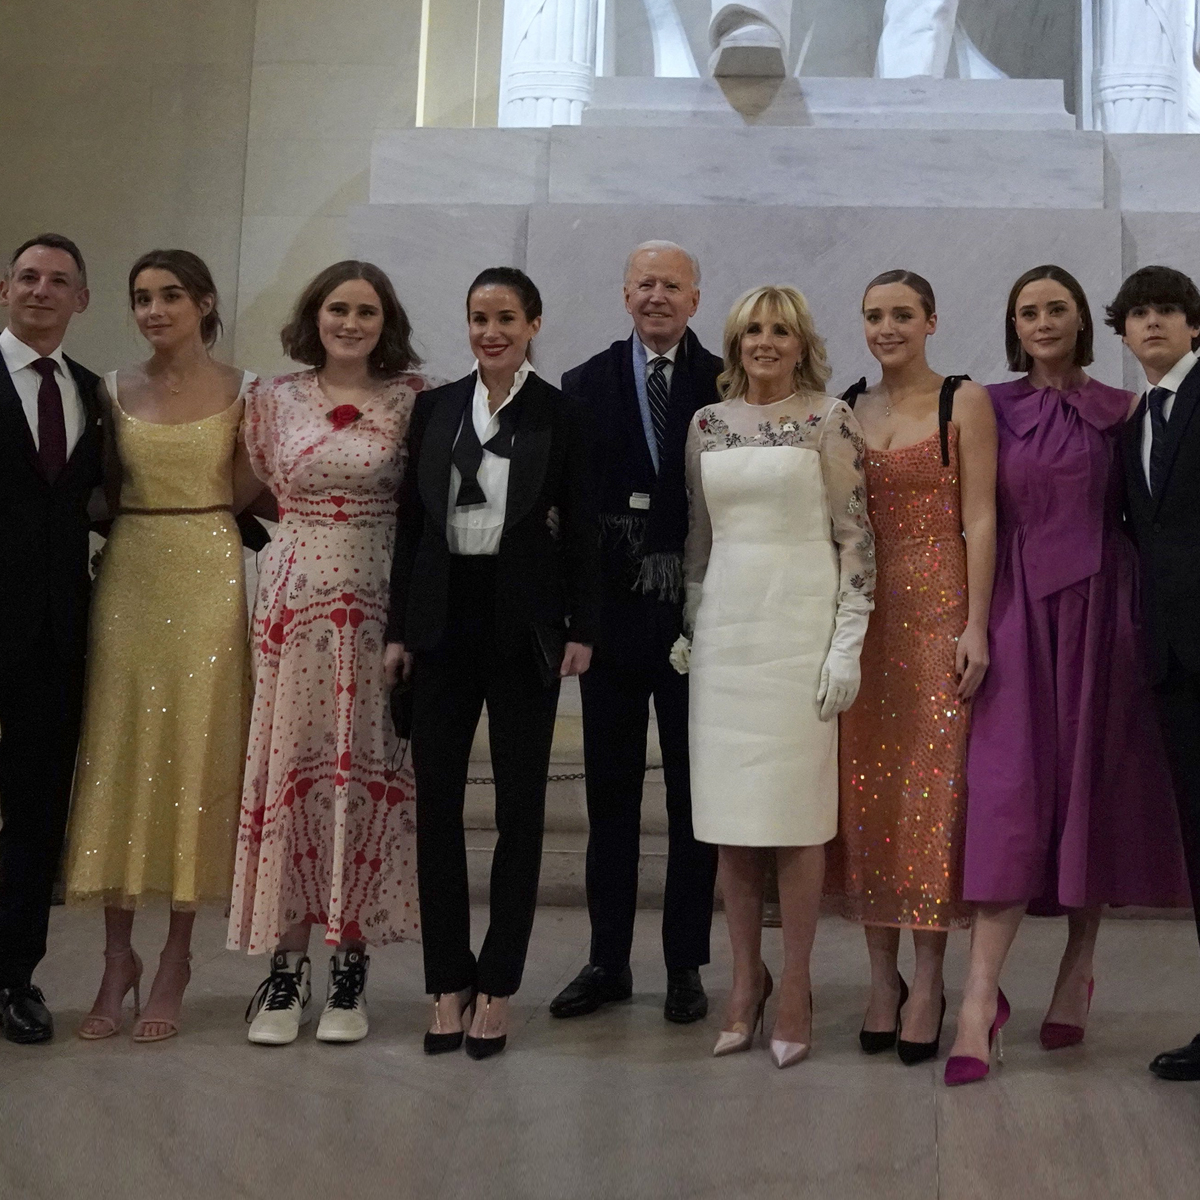 President Joe Biden's Grandkids Are the Breakout Style Stars of the 2021 Inauguration